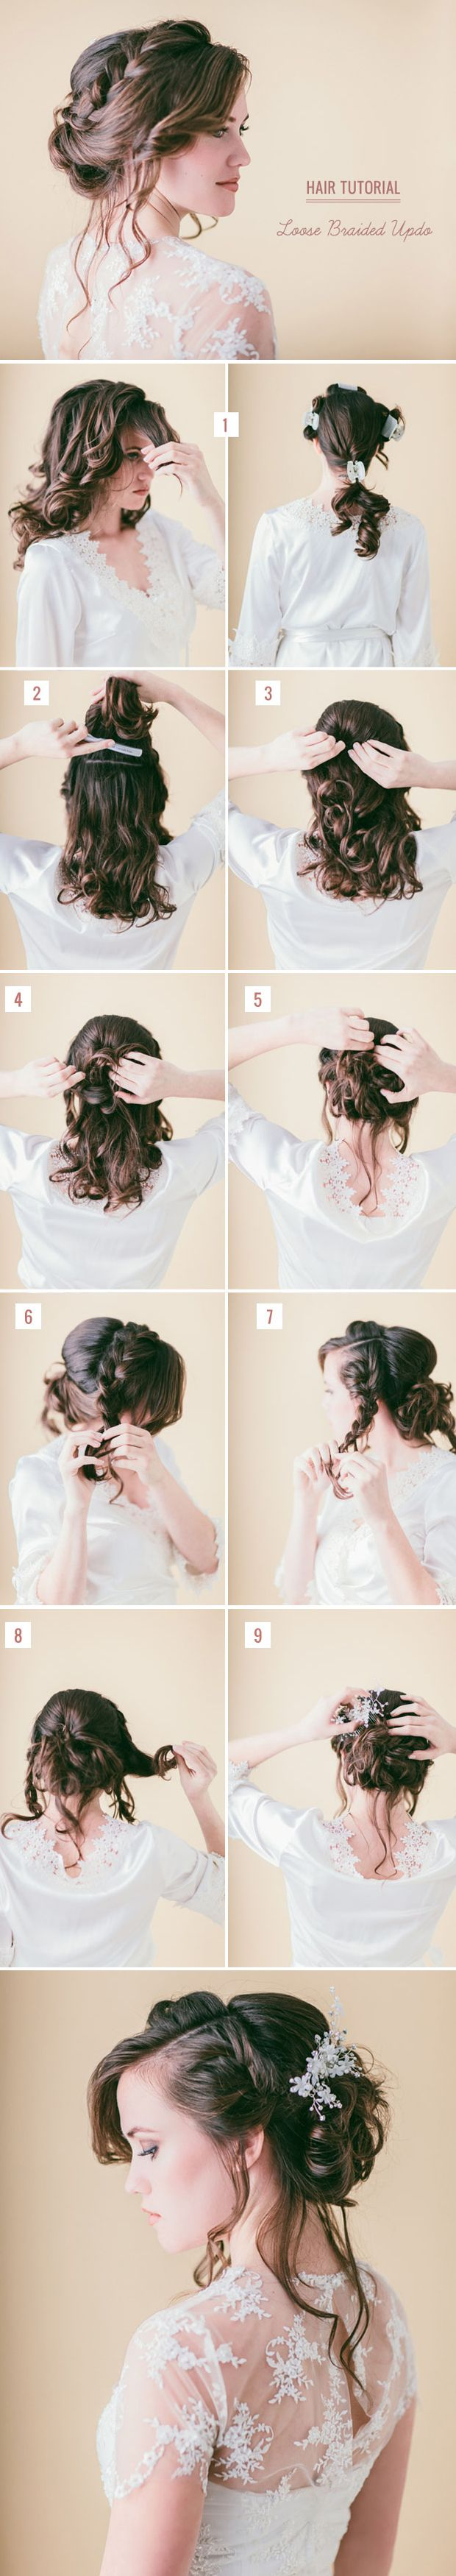 10 best diy wedding hairstyles with tutorials braided updo 10 best diy wedding hairstyles with tutorials wedding updo tutorialprom hair baditri Gallery